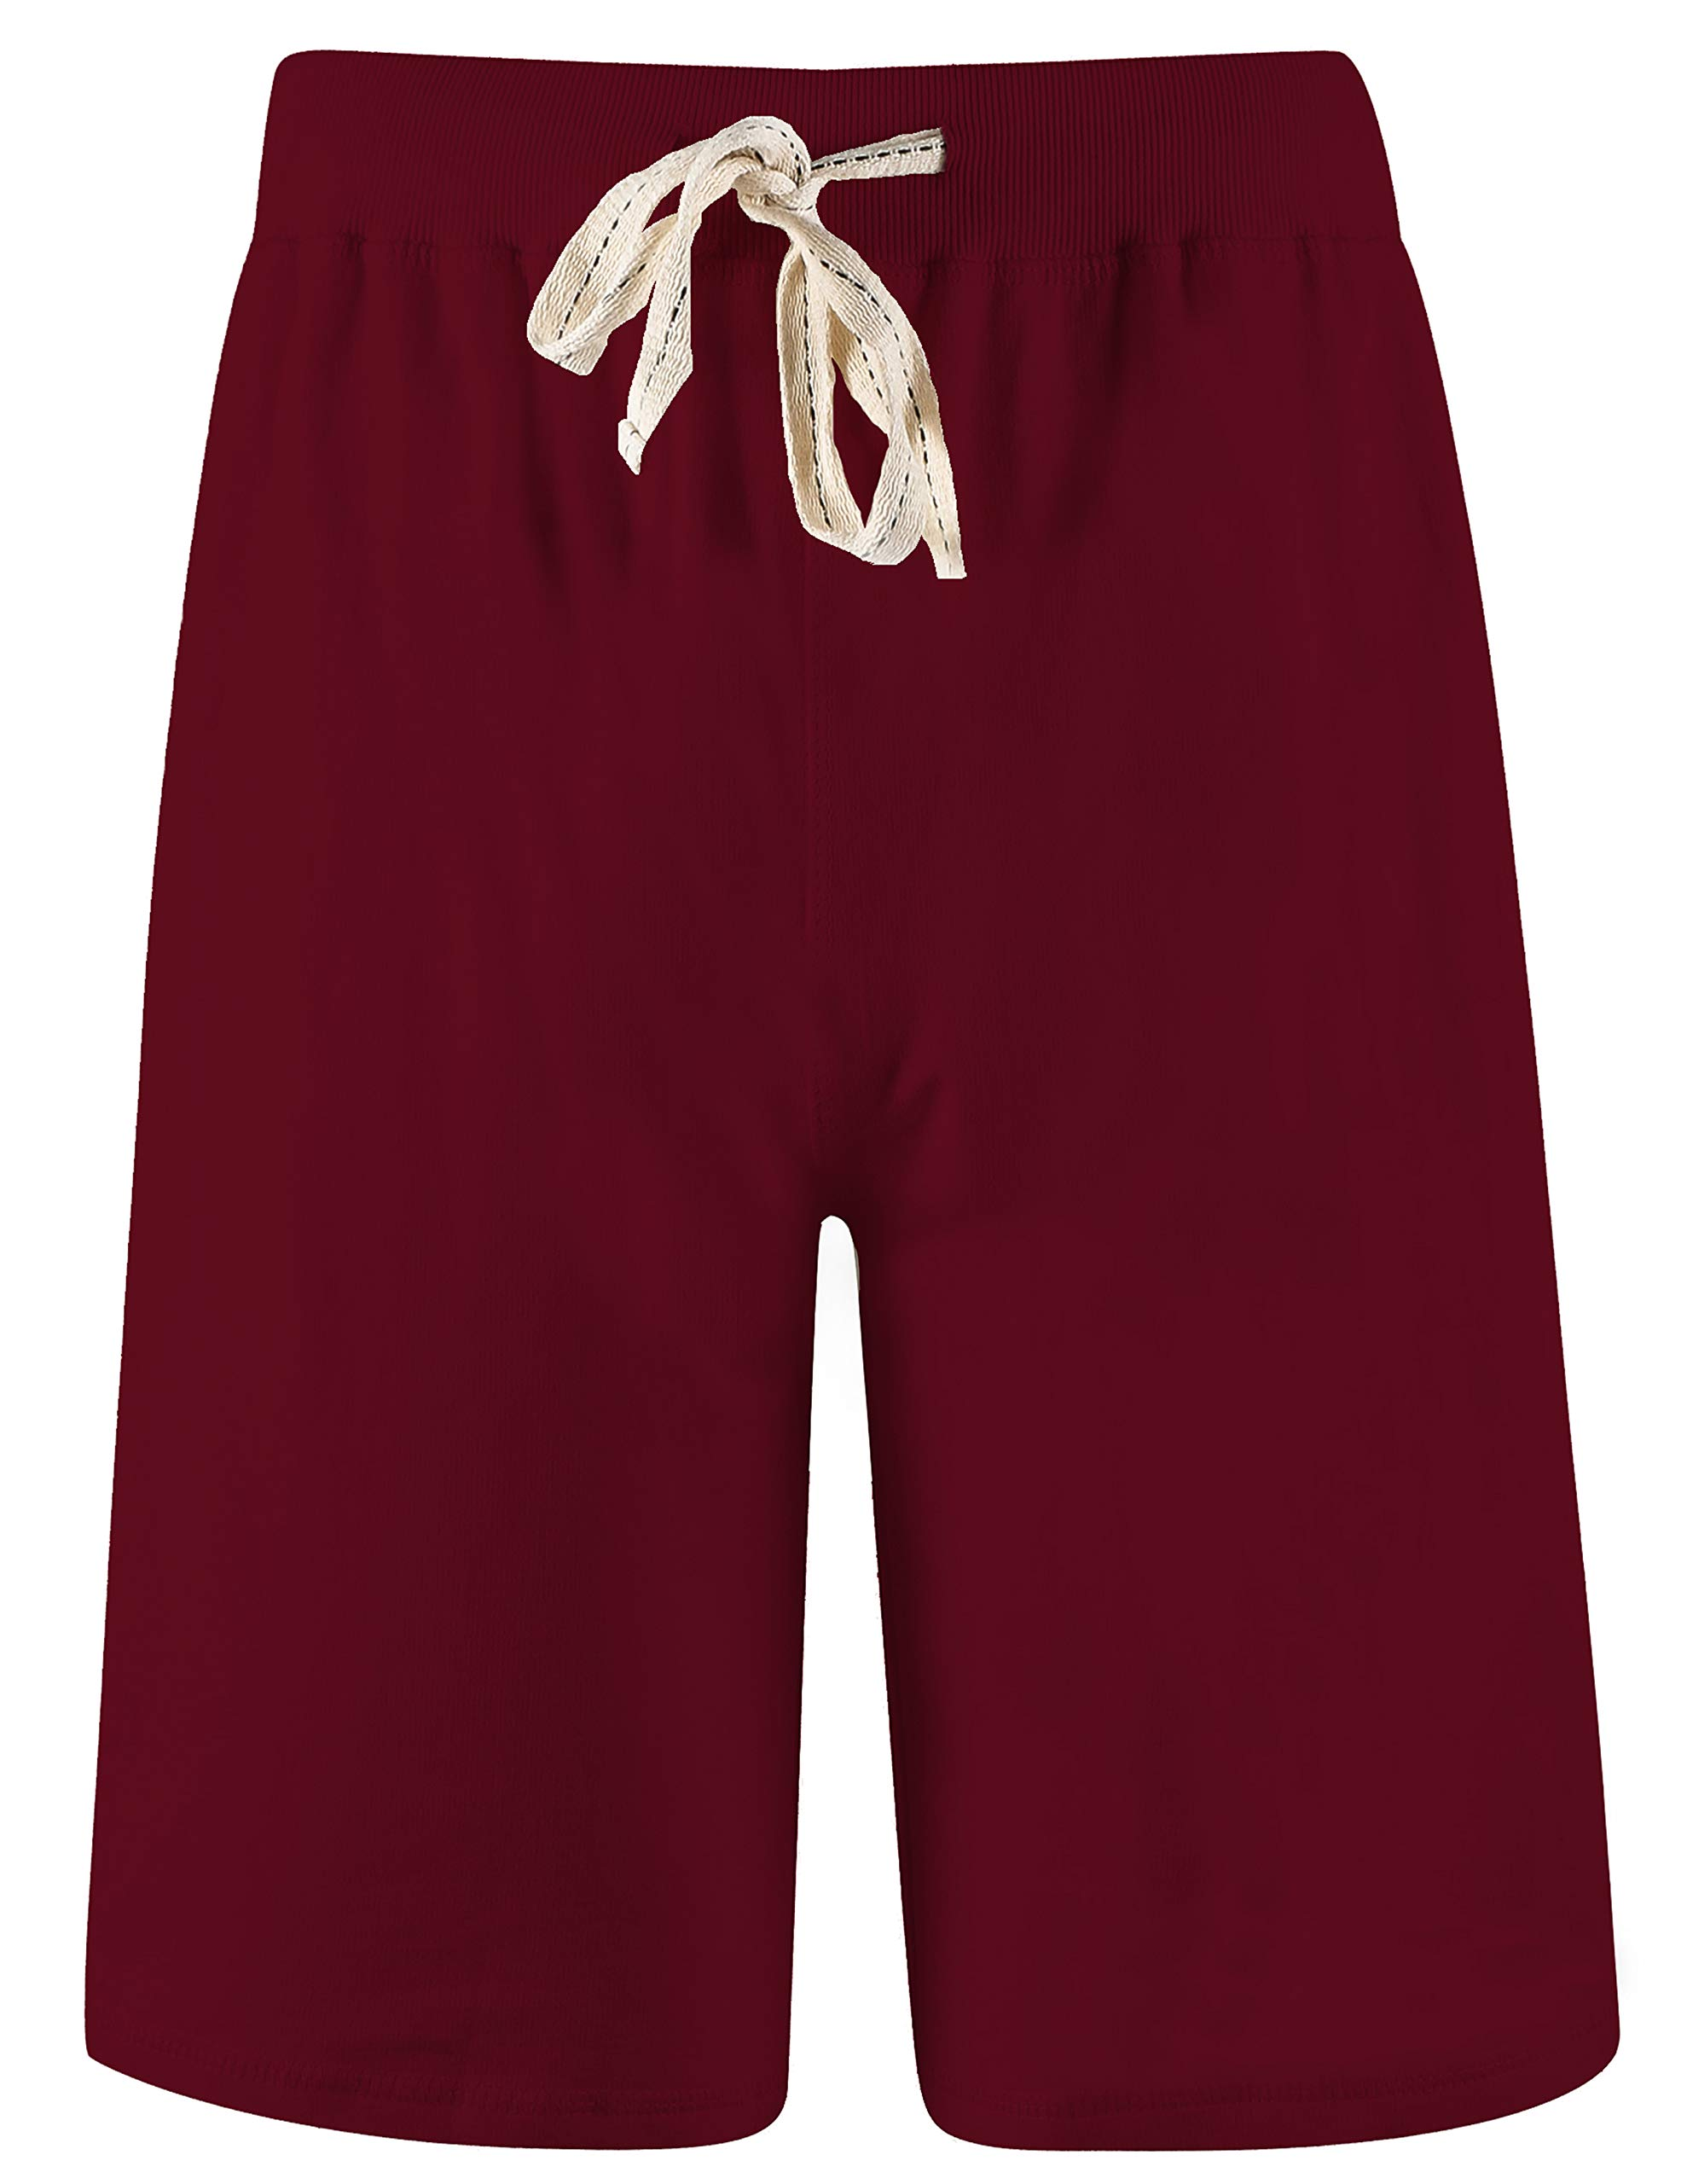 Arloesi Men's Cotton Casual Solid Shorts (XXL, Wine)